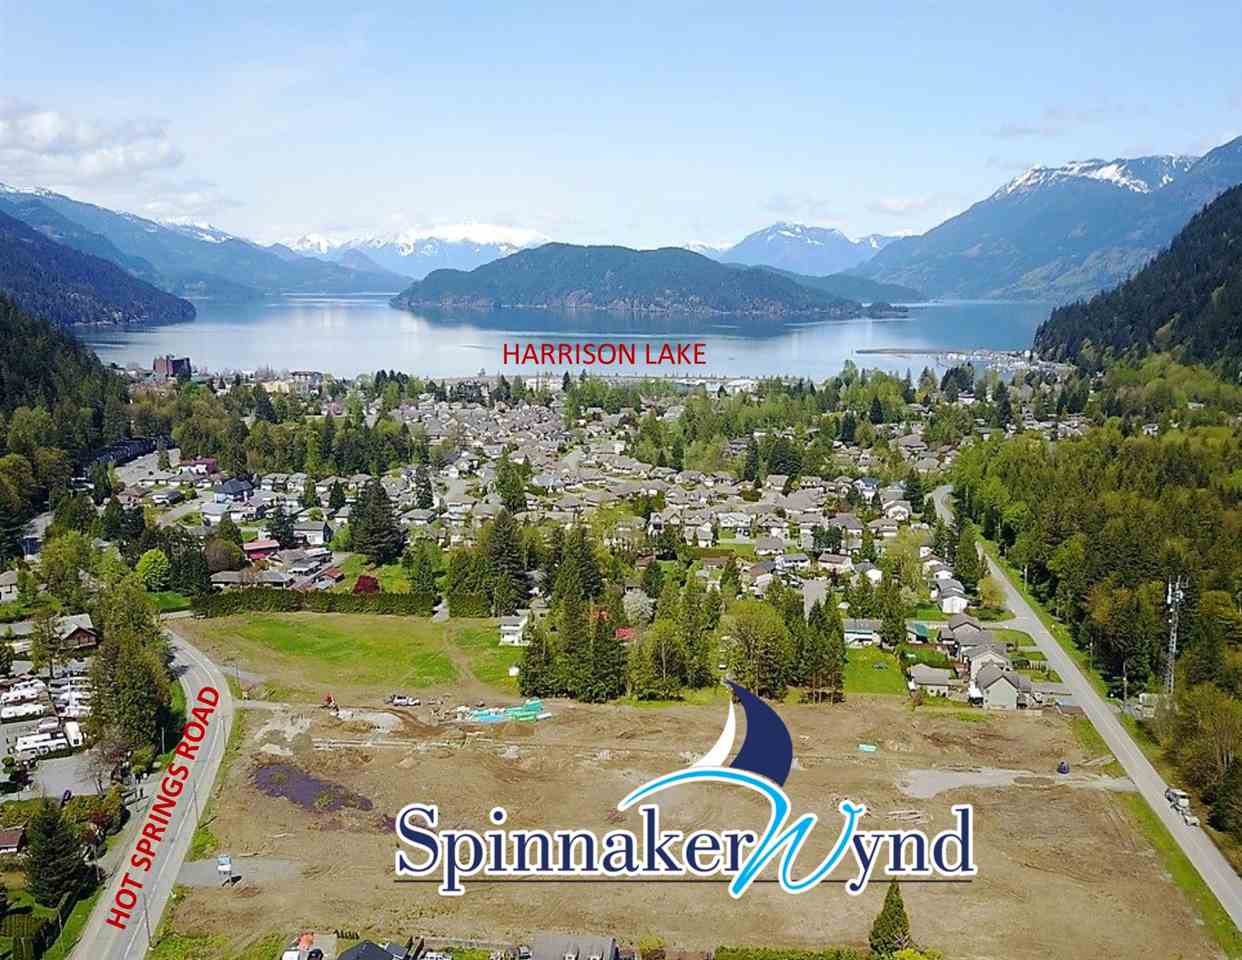 Harrison Hot Springs new development! Spinnaker Wynd, first phase of 35 single family lots. Fully services, great location walking distance to the lake. Once in a lifetime opportunity to own in a new development close to the lake! Comprehensive development will include homes, attached homes & townhomes in future phase. Info package available. Don't delay!